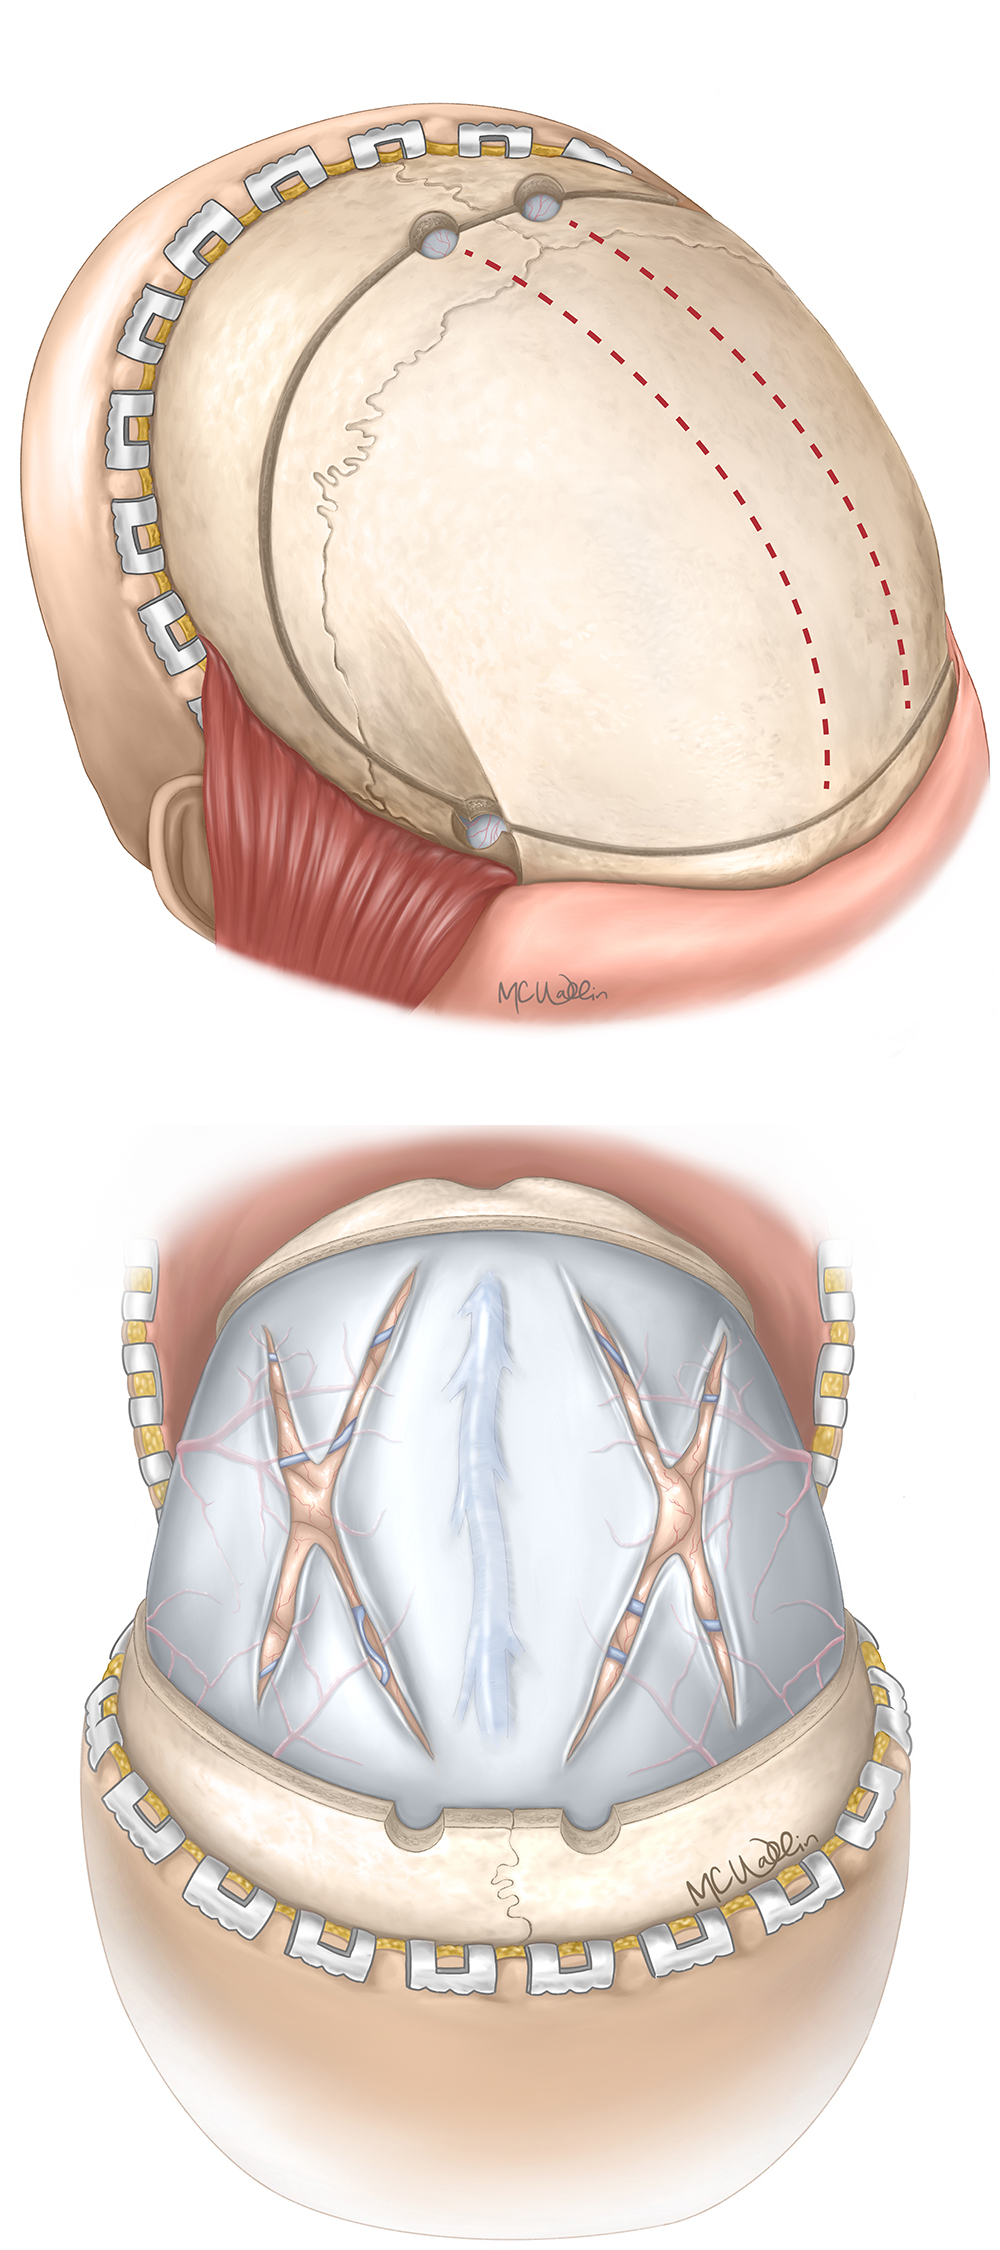 """Figure 5: The calvarium is exposed, and a parietal burr hole is placed on both sides adjacent to midline lateral enough to avoid the superior sagittal sinus and 2 fingerbreadths posterior to the coronal suture. A temporal burr hole is placed bilaterally. The biparietal and bitemporal burr holes can be connected over the superior sagittal sinus to enable complete removal of a single bone flap.  As an alternative, the bone can be cut anteriorly from the parietal burr hole and angled inferiorly near the supraorbital margin to the ipsilateral temporal burr hole (red hashed lines.) This technique will preserve a """"bucket-handle"""" bridge of bone along the sagittal sinus and permits a bifrontal craniectomy.  A high-speed drill with a footplate is used to connect the temporal and parietal burr holes, extending as far posteriorly during the cut as possible given the exposure. The anterior cut is made, and the bone flap can then be elevated.  After ligation of the anterior superior sagittal sinus, a durotomy can be performed in either bilateral cruciate or single stellate fashion. A dural substitute is then placed overlying the durotomy to permit brain relaxation among the durotomy flaps."""